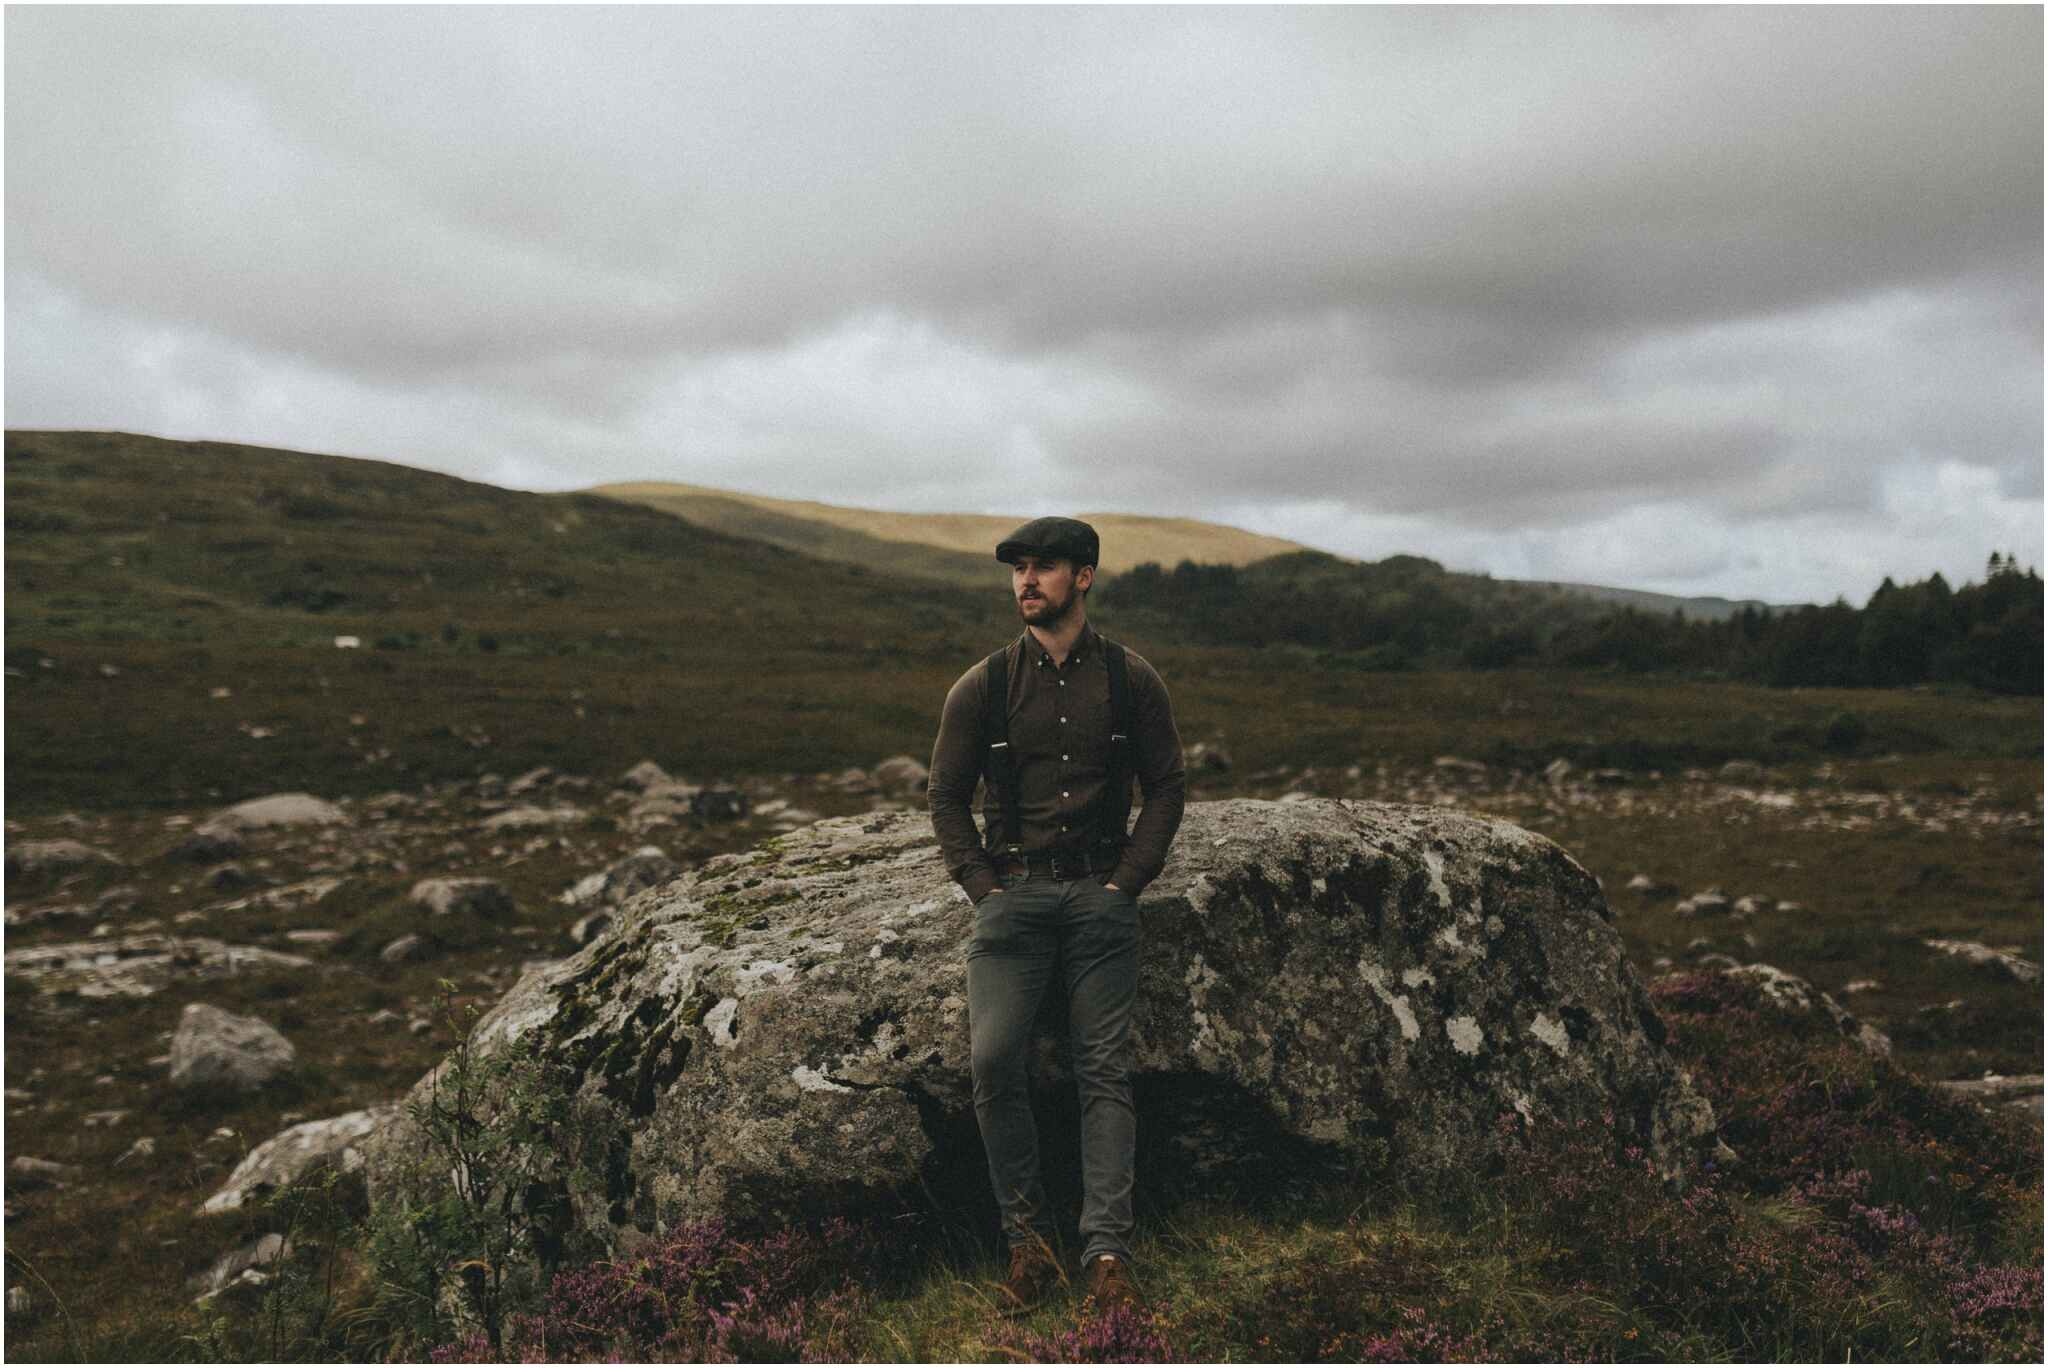 Rachel + David - Hiking Elopement in Muckish Mountain and Poisoned Glen, Donegal 38